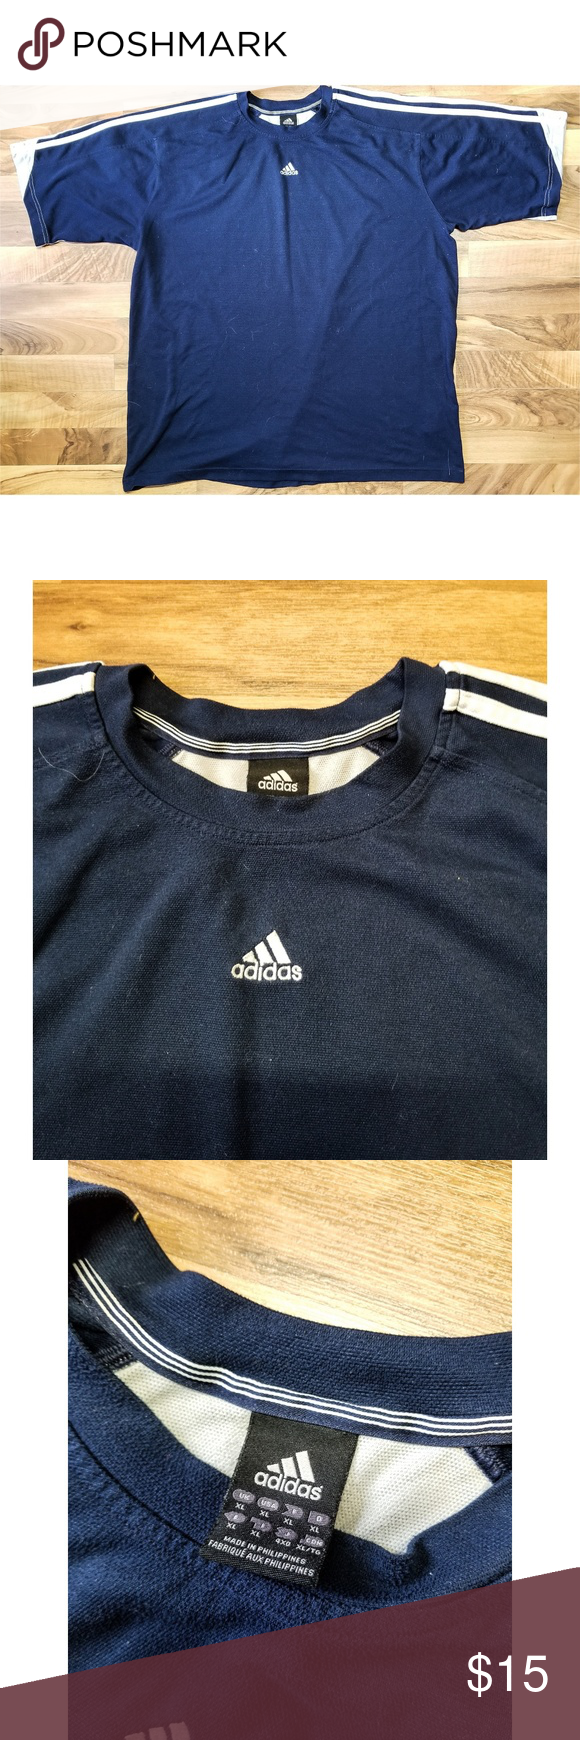 uk availability 051cd 83e67 Adidas Climalite Performance T Shirt. Great Shape! 💥 Great Condition! 💥  Awesome Climalite Technology! 💥 Classic Adidas Silhouette!